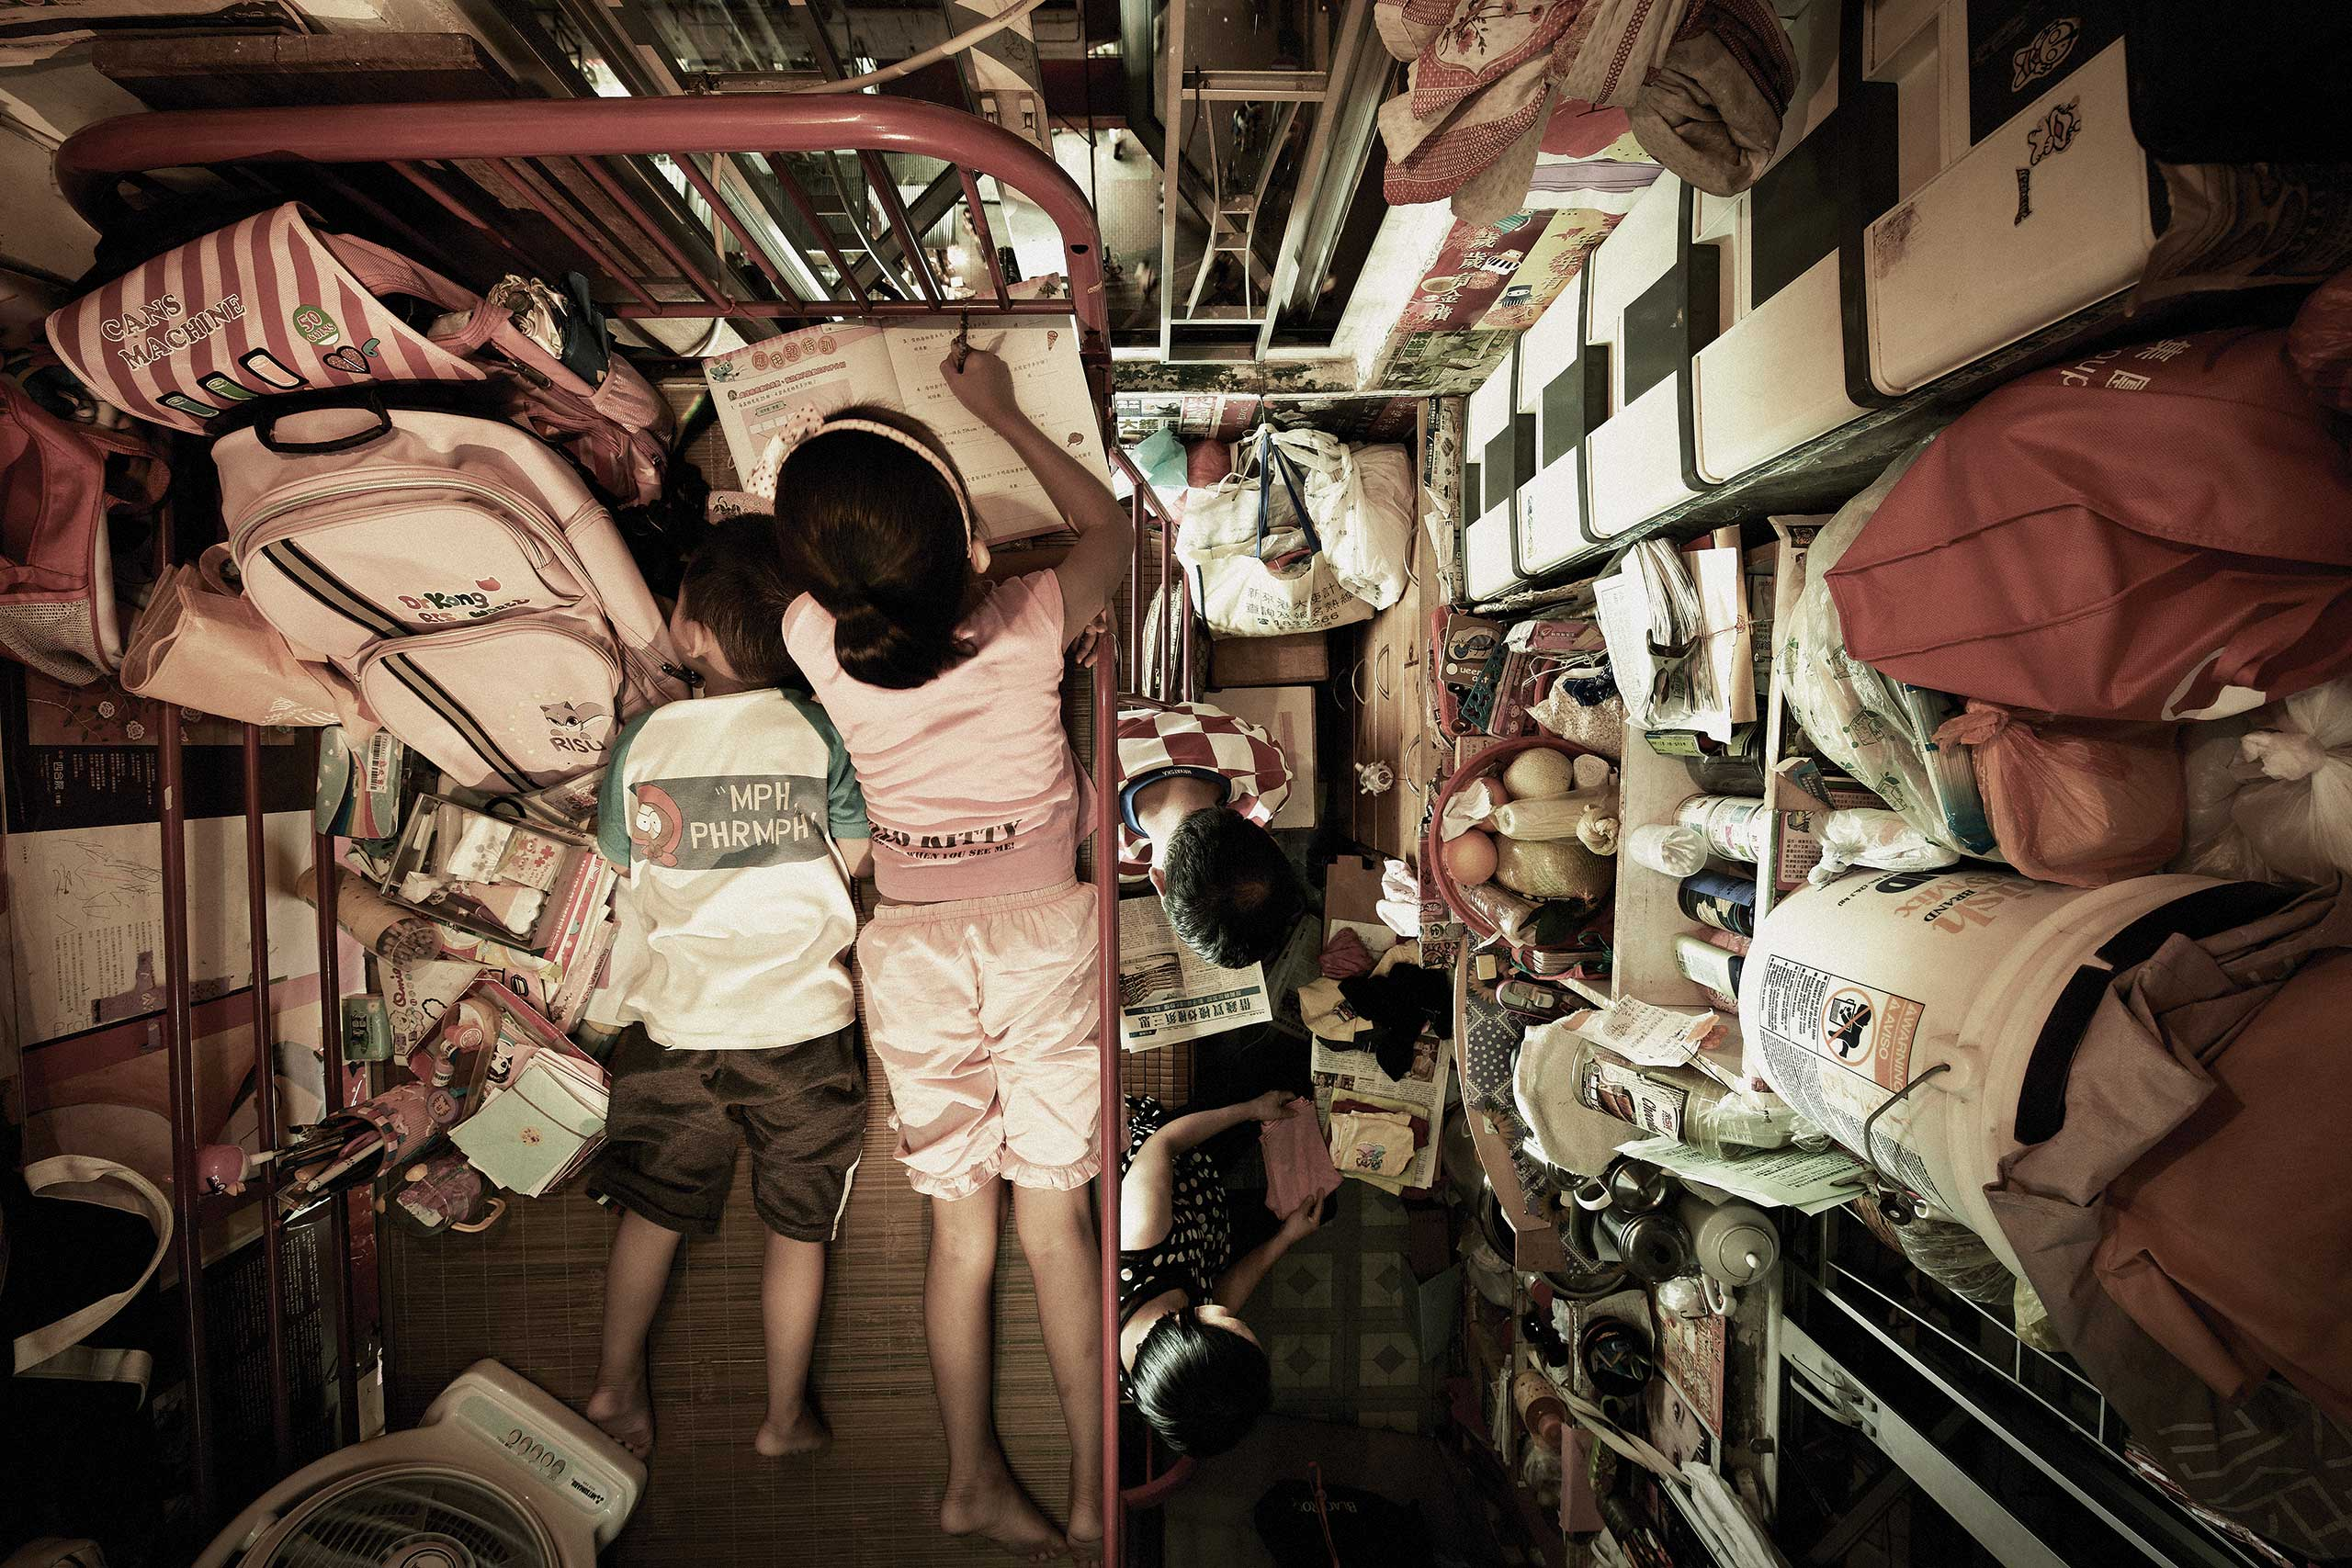 Trapped 08. From the Series: Subdivided Flats, 2012, Hong Kong.